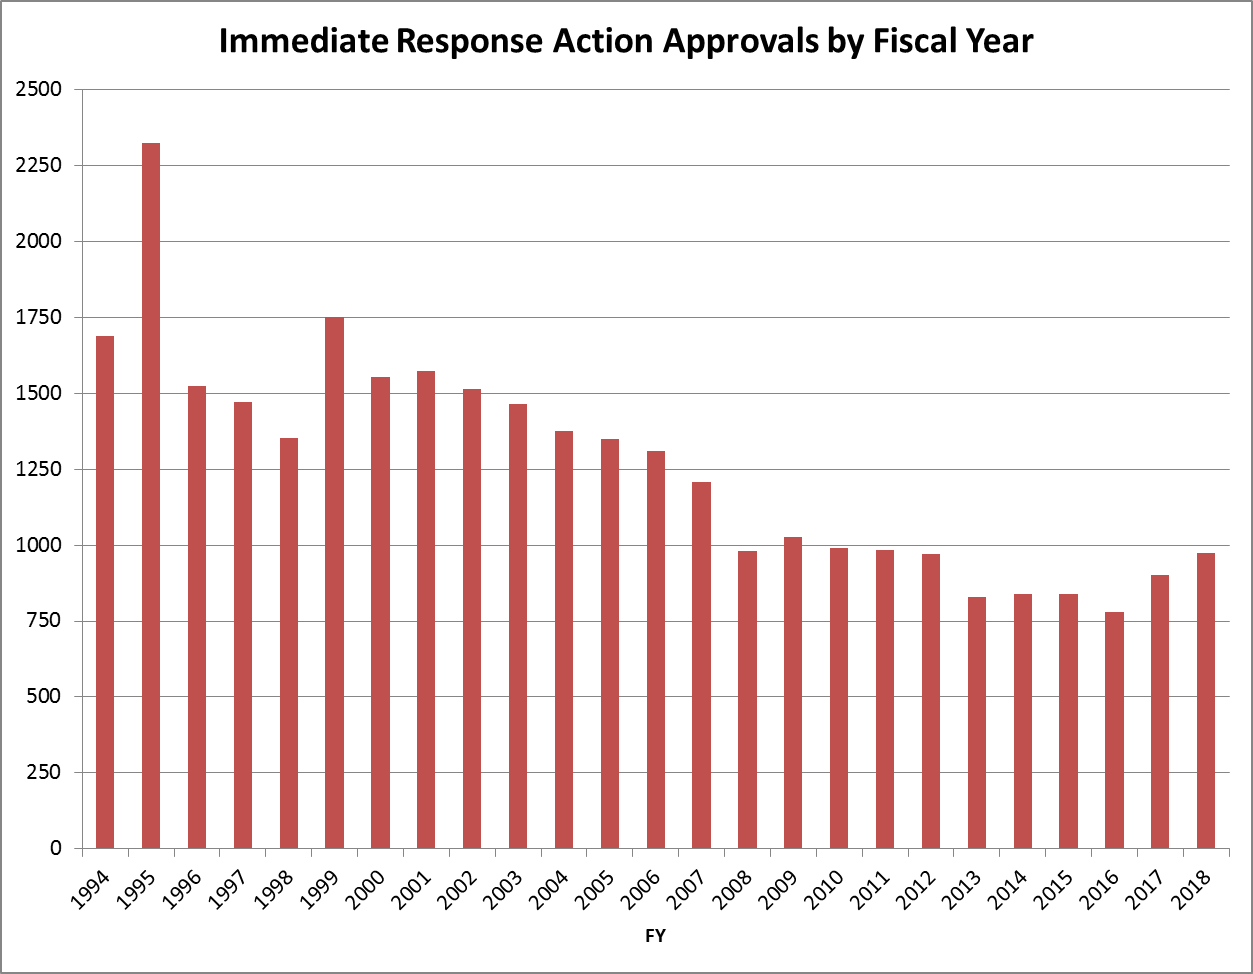 Immediate Response Action Approvals By Fiscal Year